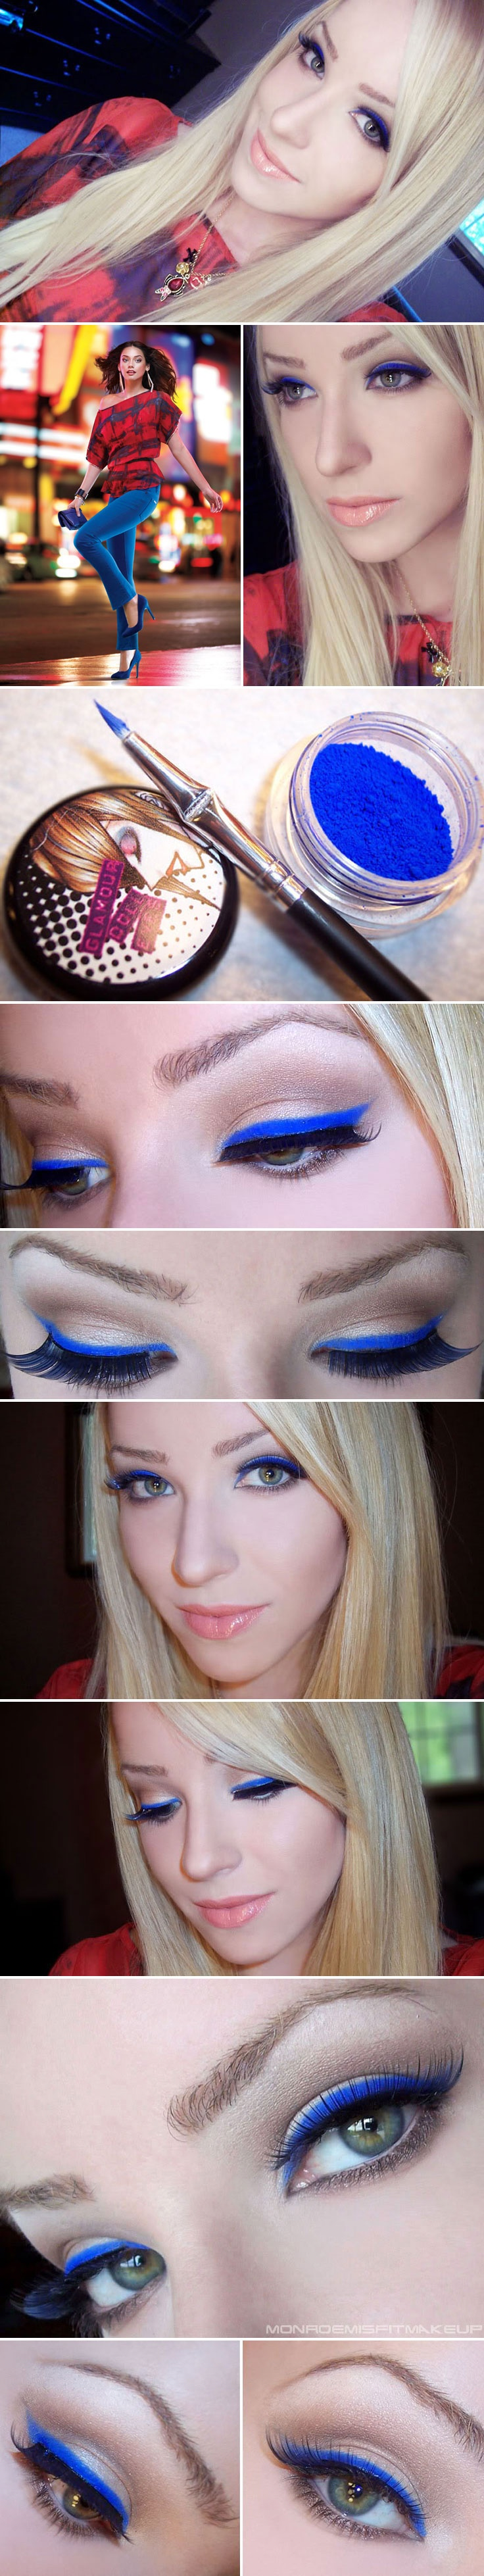 DIY :: Electric Royal Blue Eyeliner by #monroemisfitmakeup :: Sketch line w/ Covergirl Liquiline Blast Blue Bloom pencil & press Glamour Doll Eyes pigment Mingles on it to dry w/ an angled brush. The rest of the eyes... NARS Pro-Prime Eyeshadow Base. MAC Shroom--lid. UD Naked Palette--Naked & Buck in crease. MAC Blanc Type & Dazzlelight (matte wht & cream shimmer)--brow/inner corner. UD 24/7 pencil Underground (warm taupey brown)--lower lashline. Elise Blue False Eyelashes.